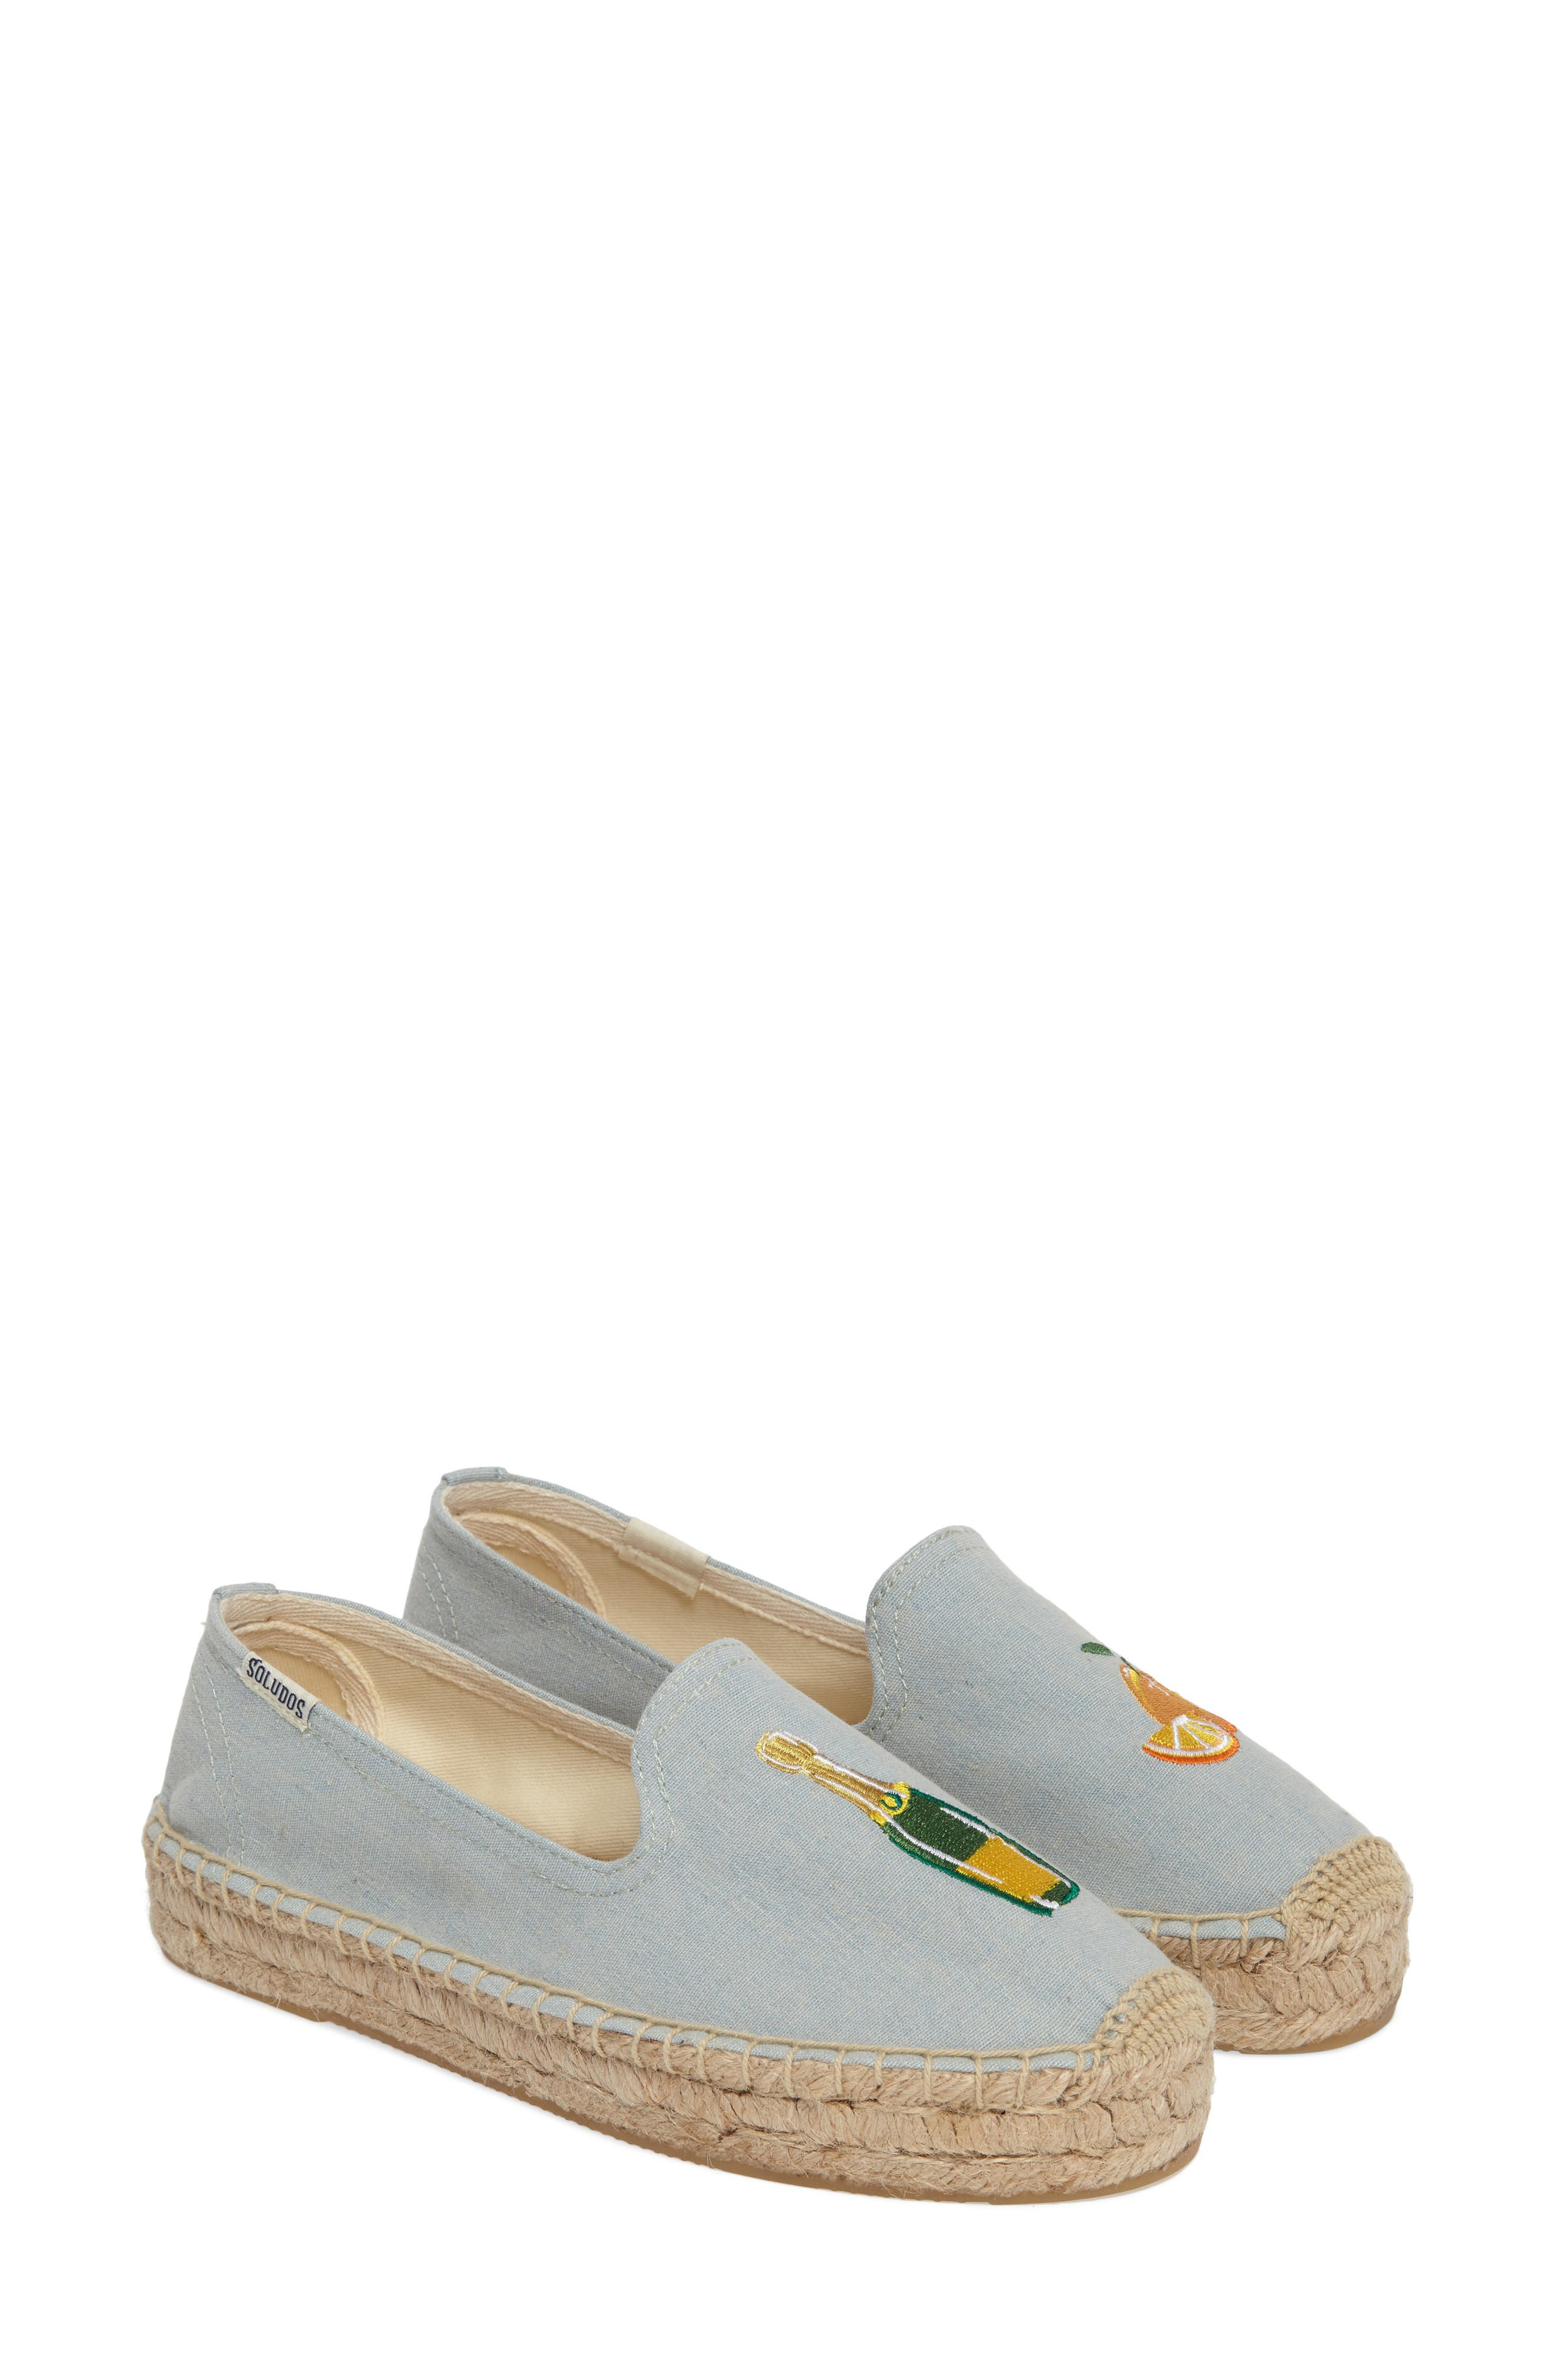 SOLUDOS,                             Mimosa Embroidered Platform Espadrille,                             Main thumbnail 1, color,                             420